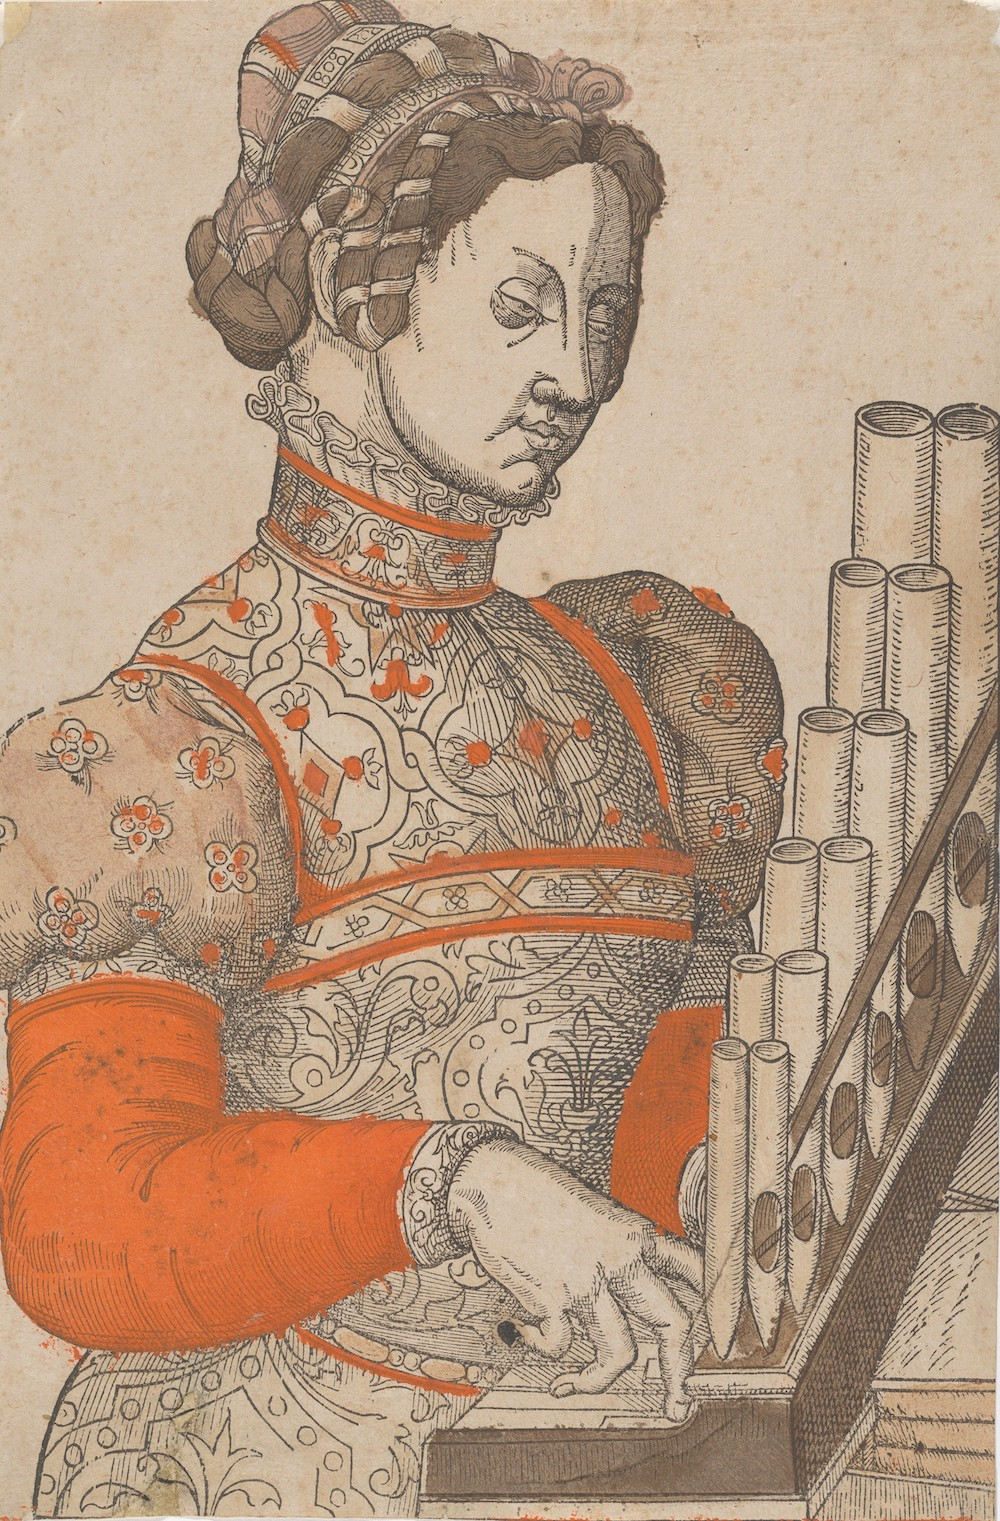 A colored woodcut of a woman playing a small organ.